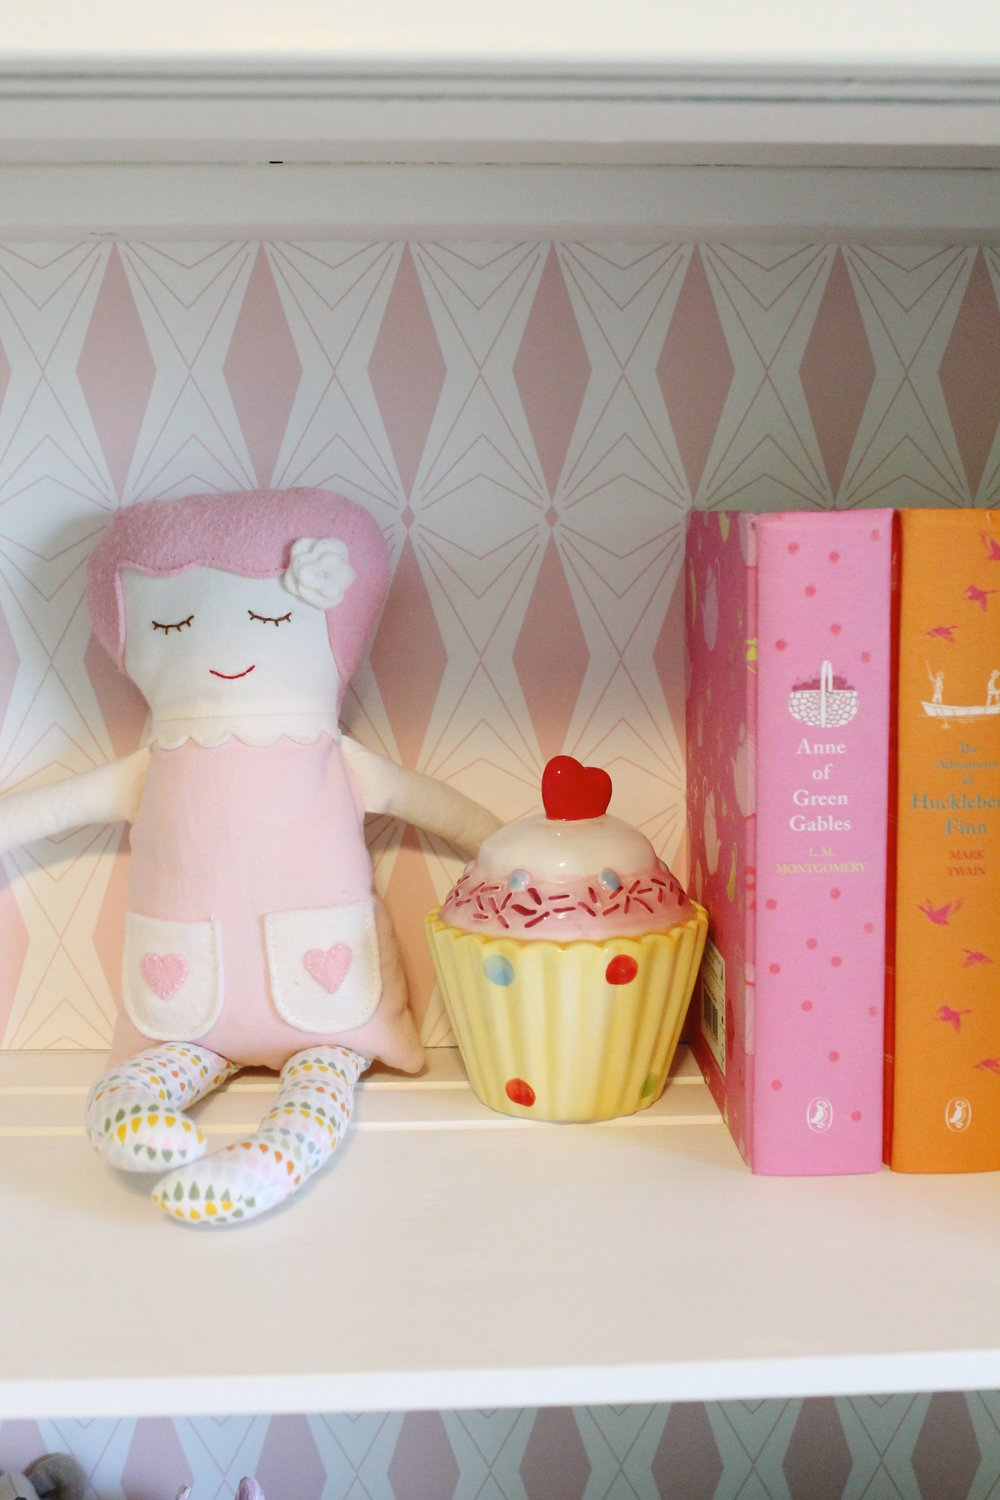 Black Apple Doll, Puffin Books and cupcake bank.